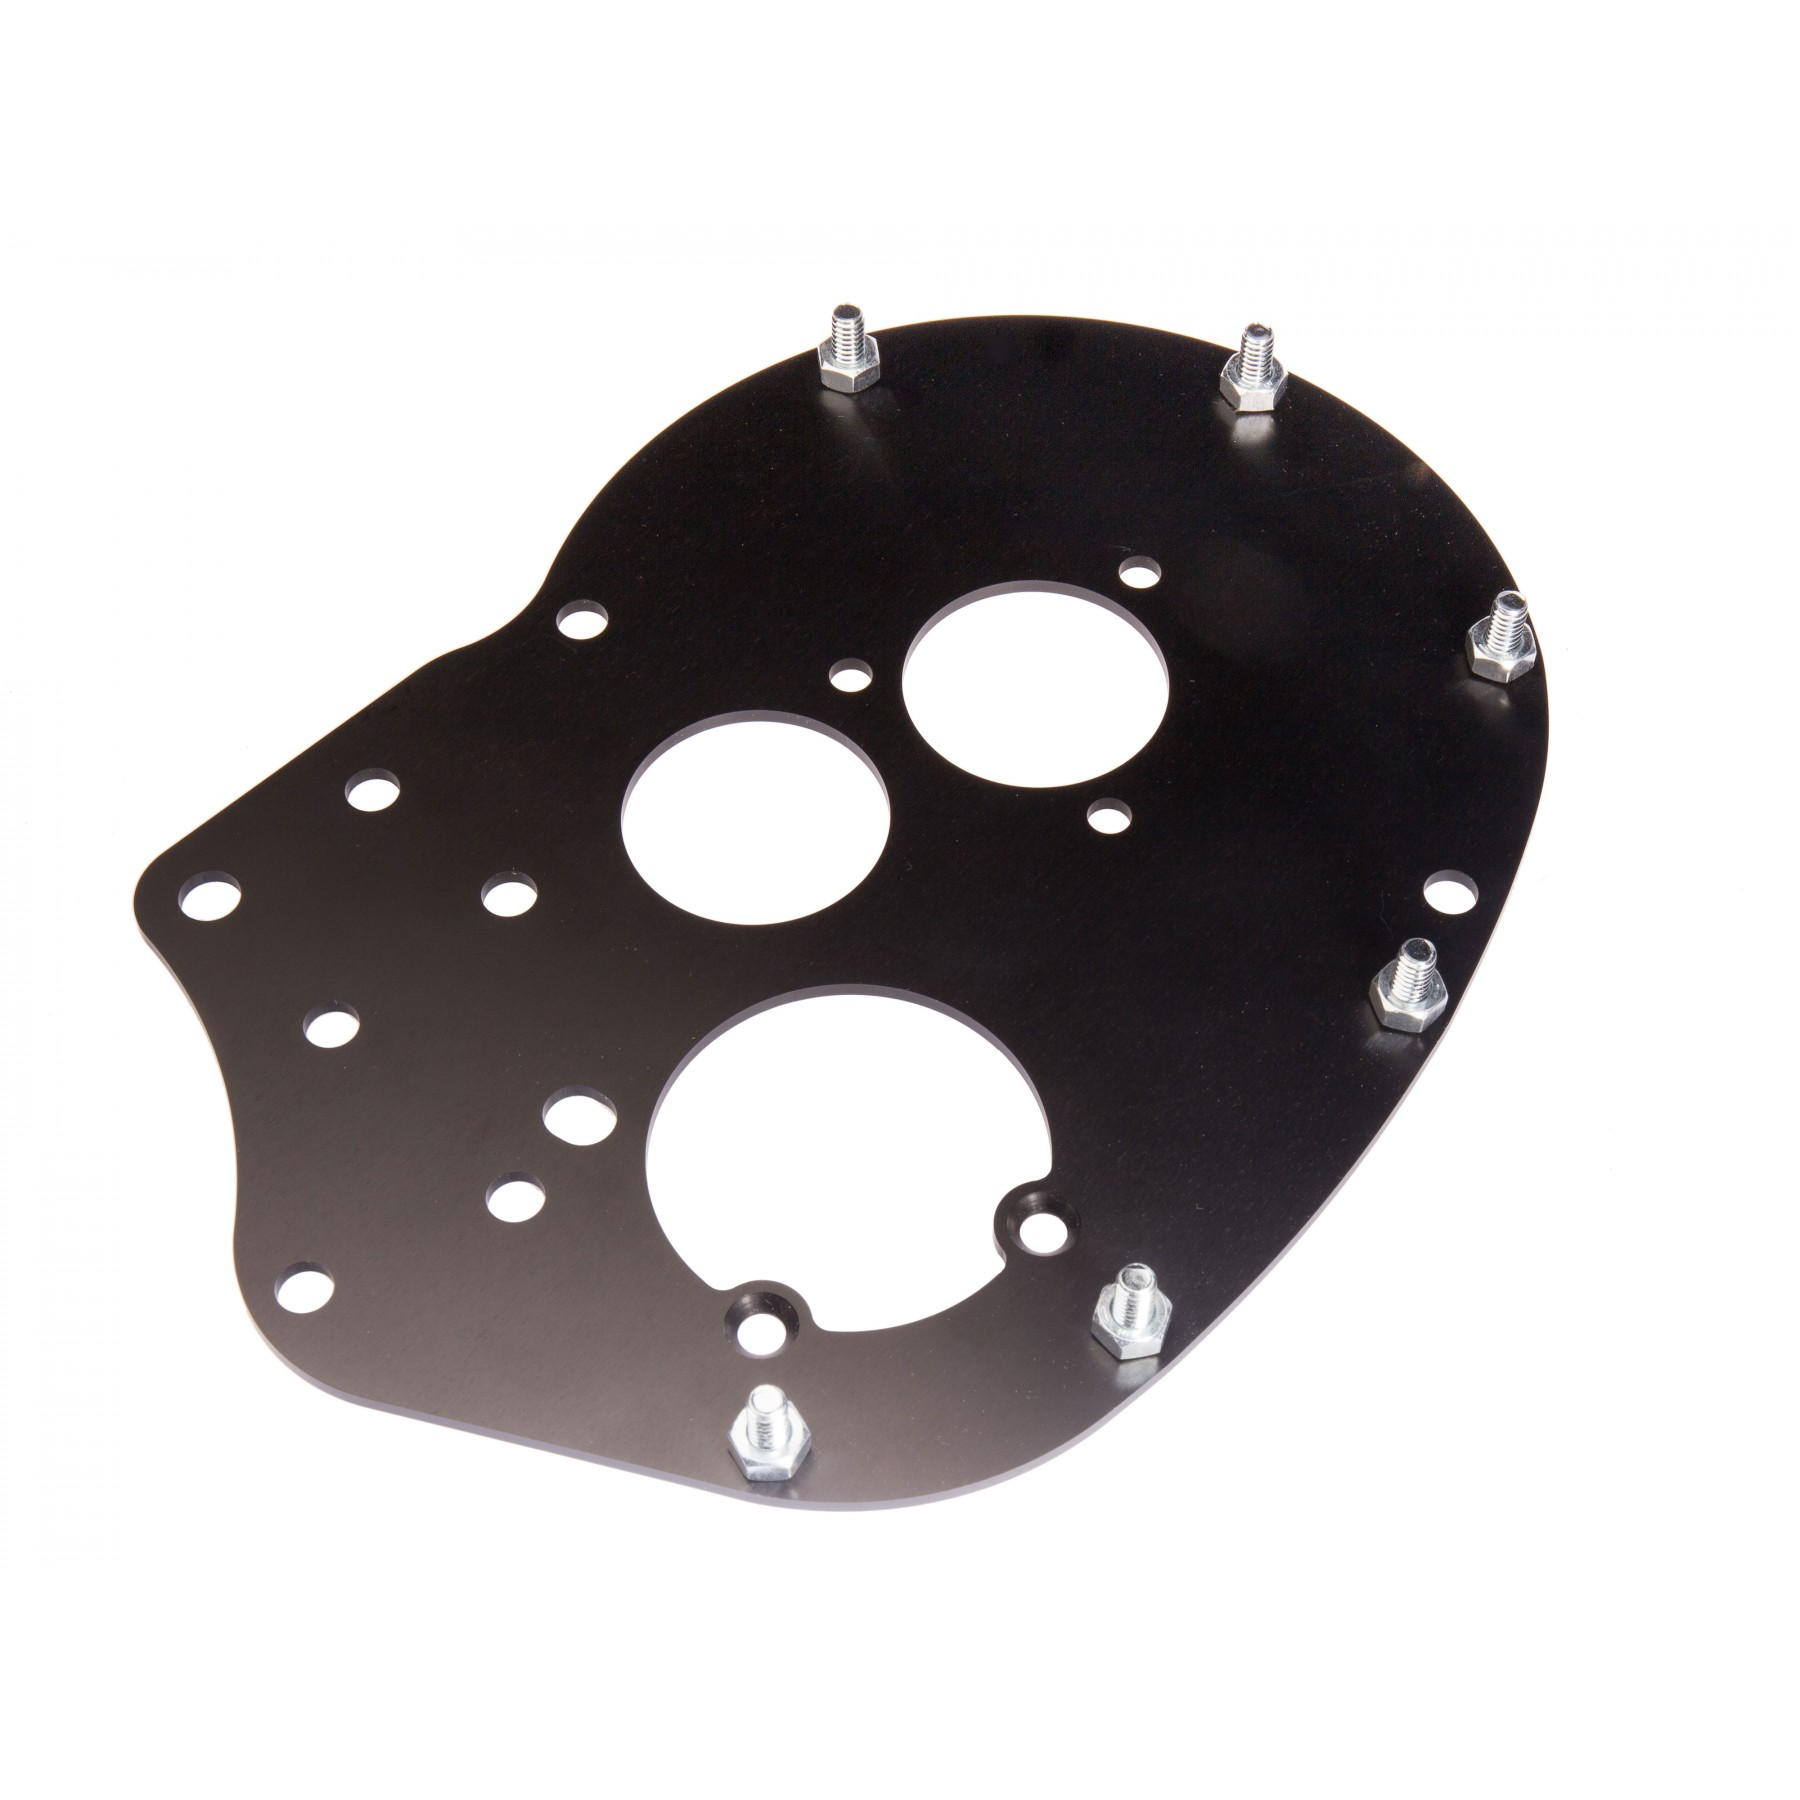 MED ALLOY TIMING PLATE - MINI